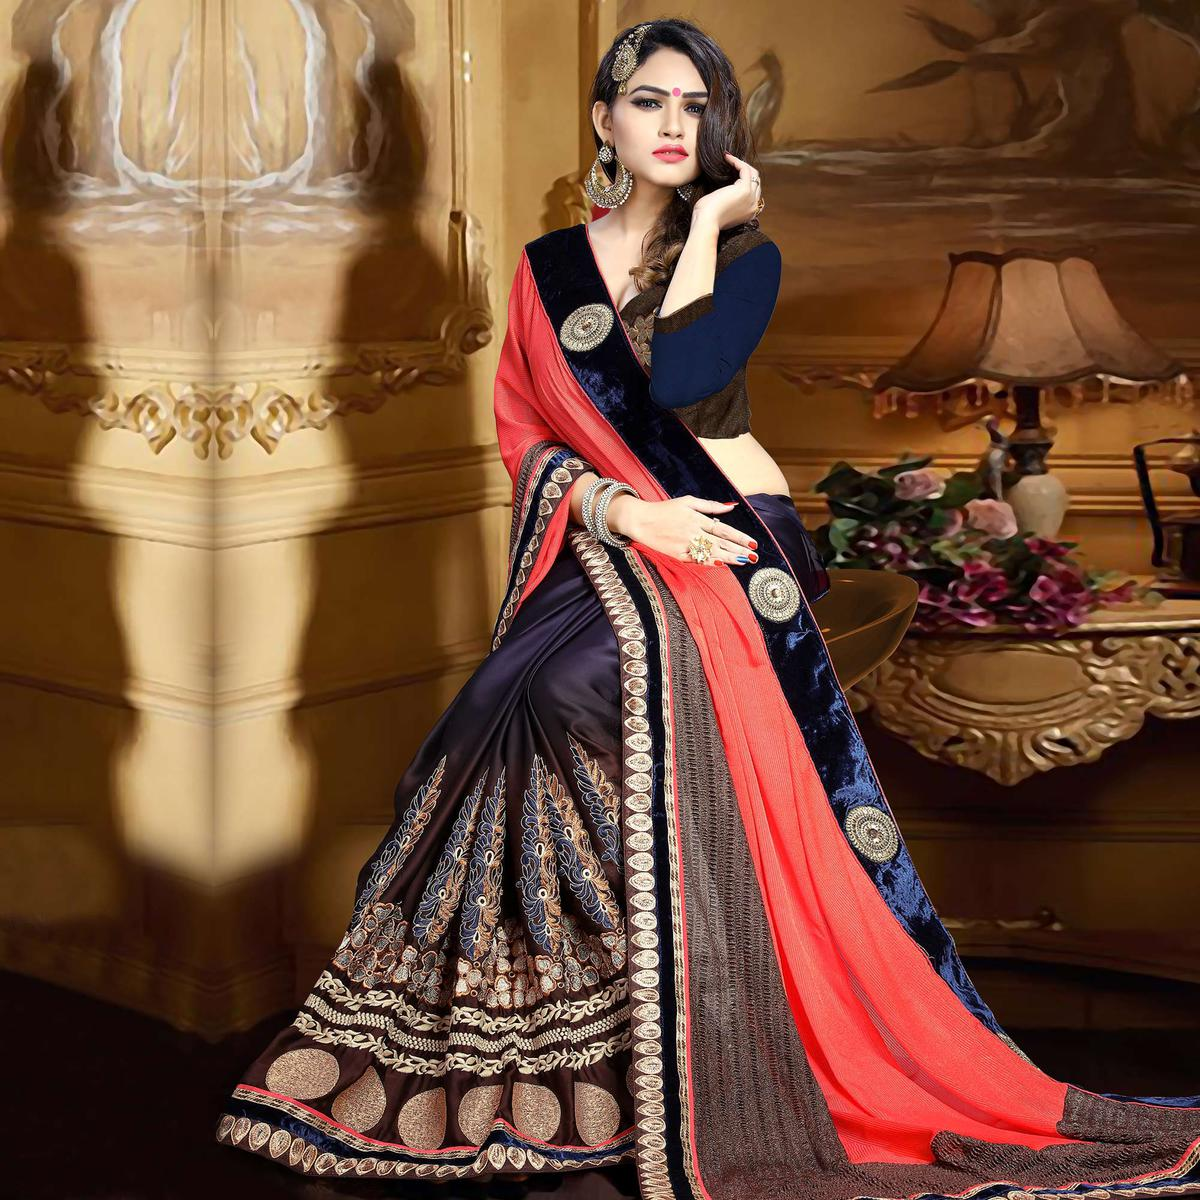 ... TCR Men Golden Pin-tucked Striped Bandhgala Jacket quality design a06d2  f6368  Ink Blue - Peach Georgette Satin Saree promo code 5b85a eb883 ... 1d9ae5ee3